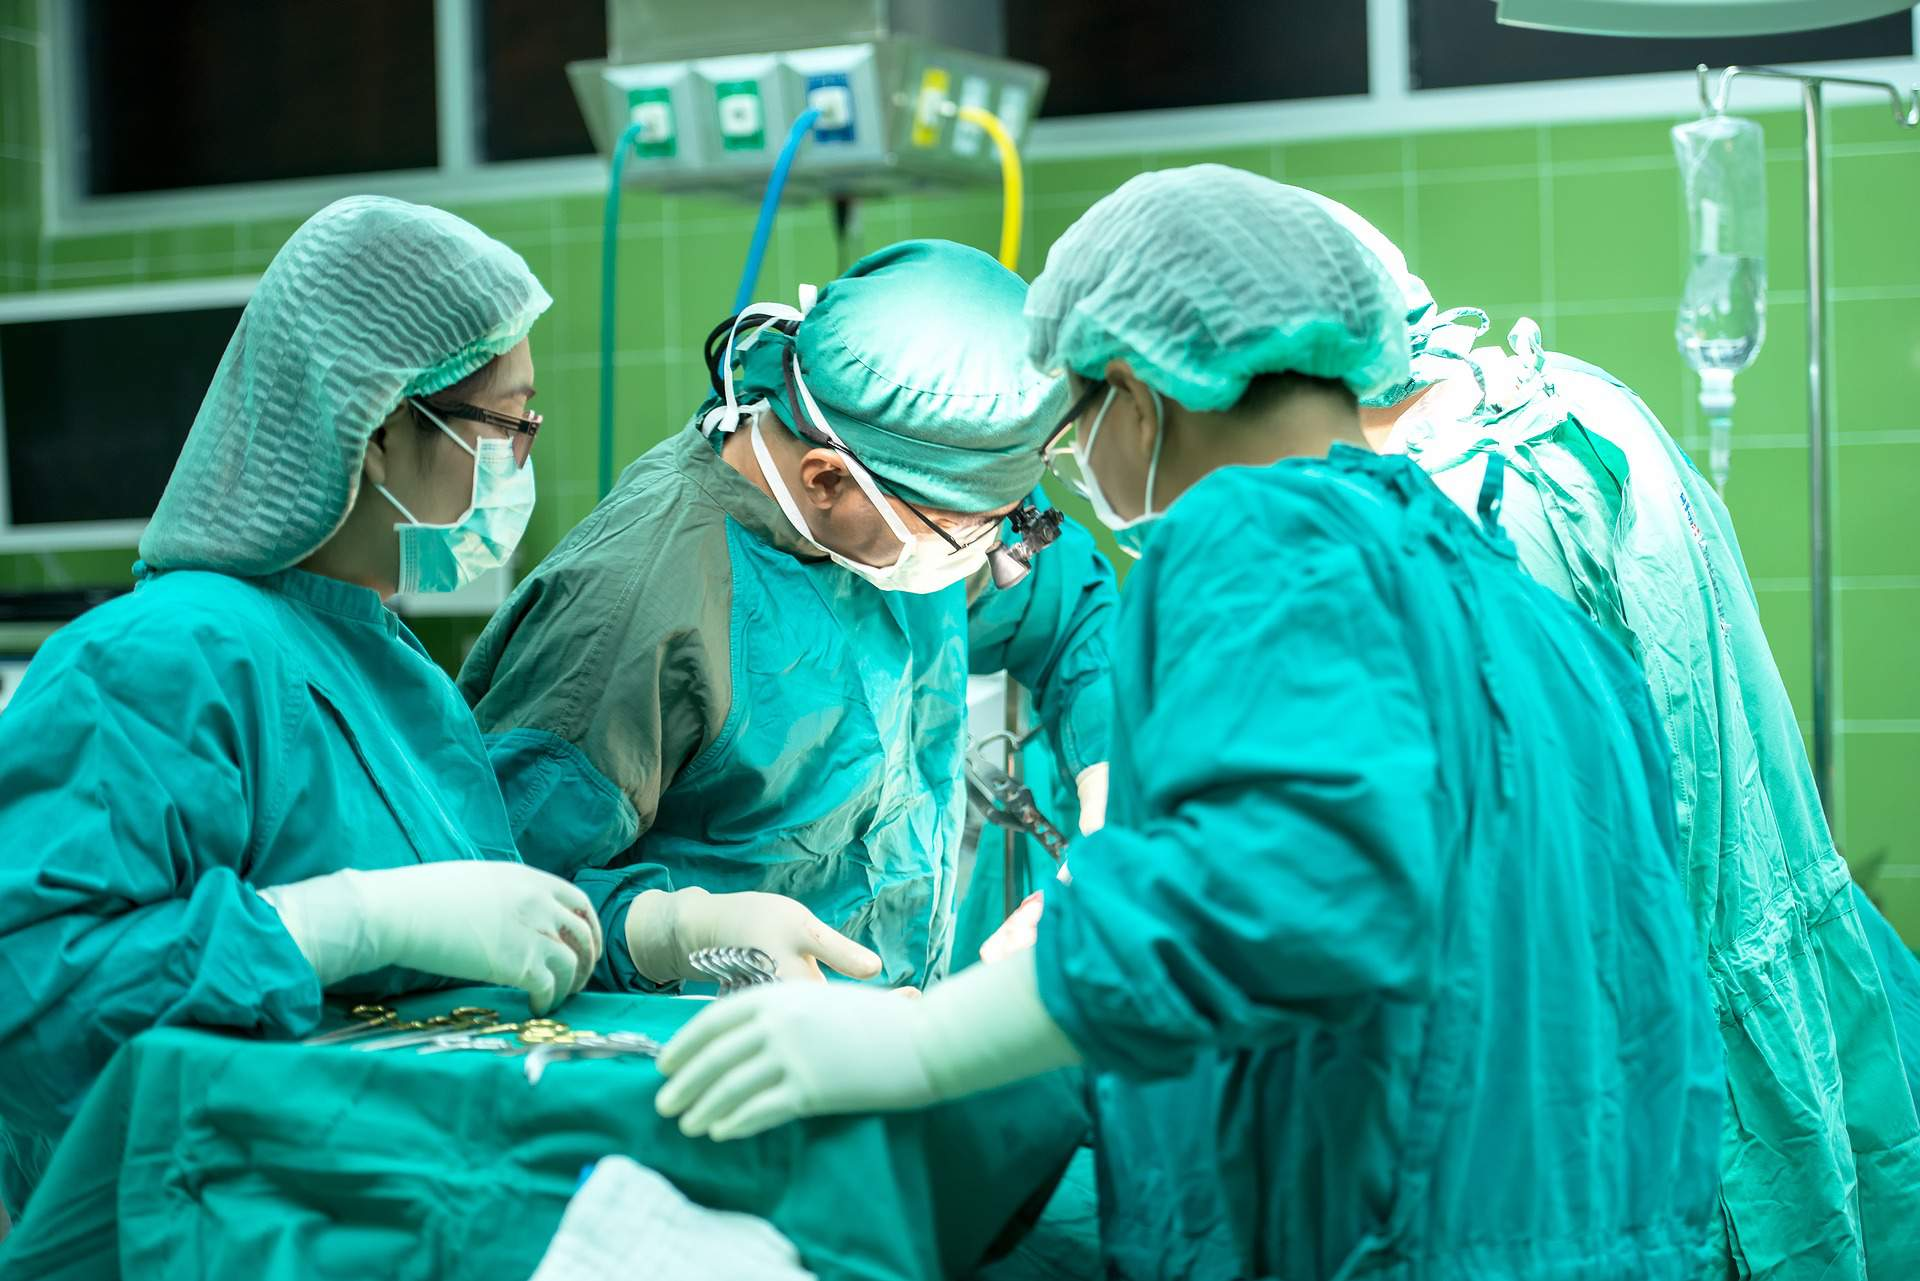 surgery, hospital, doctors